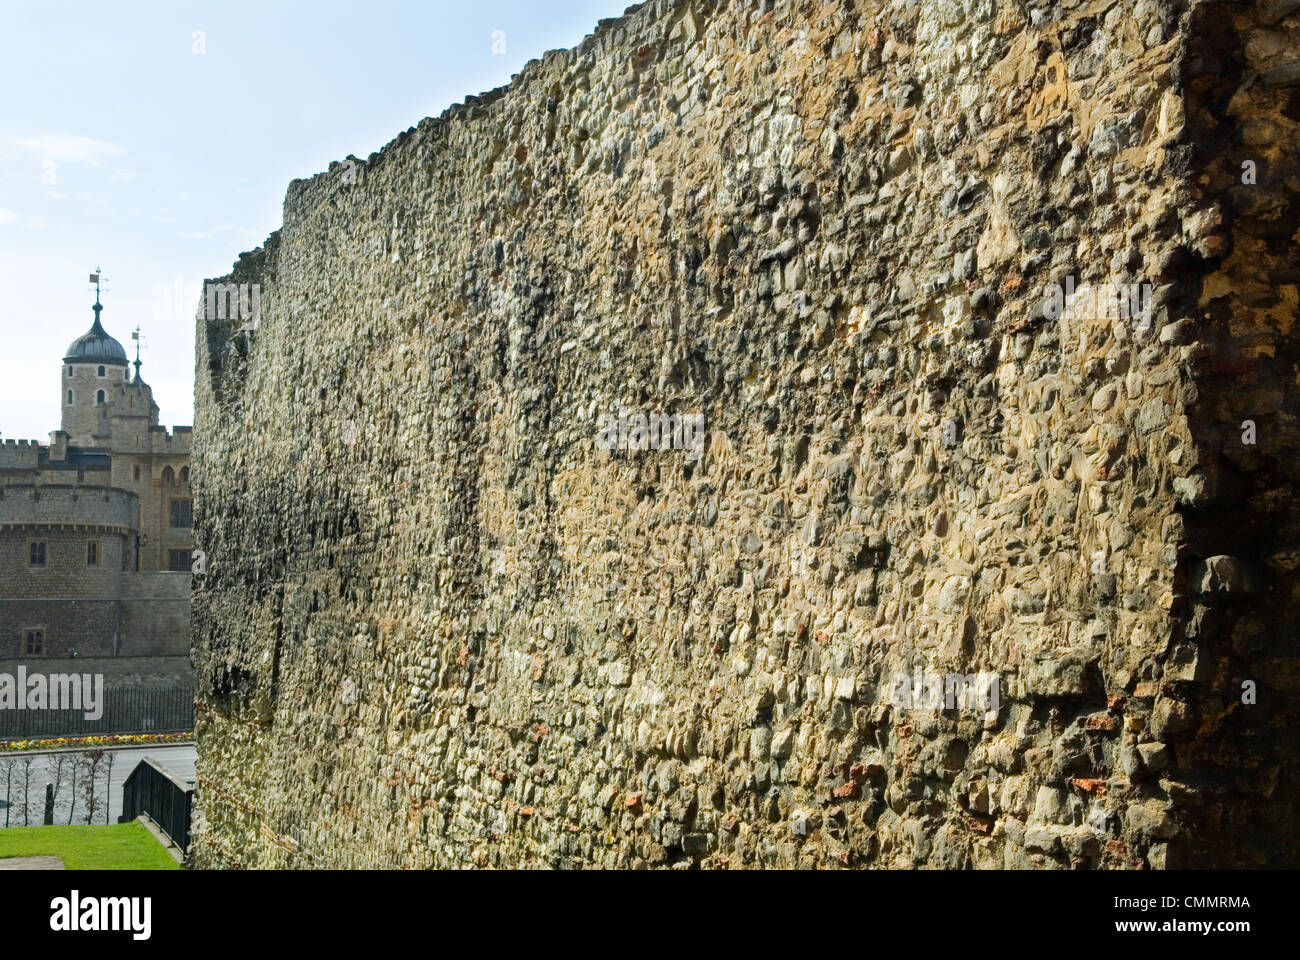 London Wall. At Tower Hill, Tower of London in background. London Uk HOMER SYKES - Stock Image